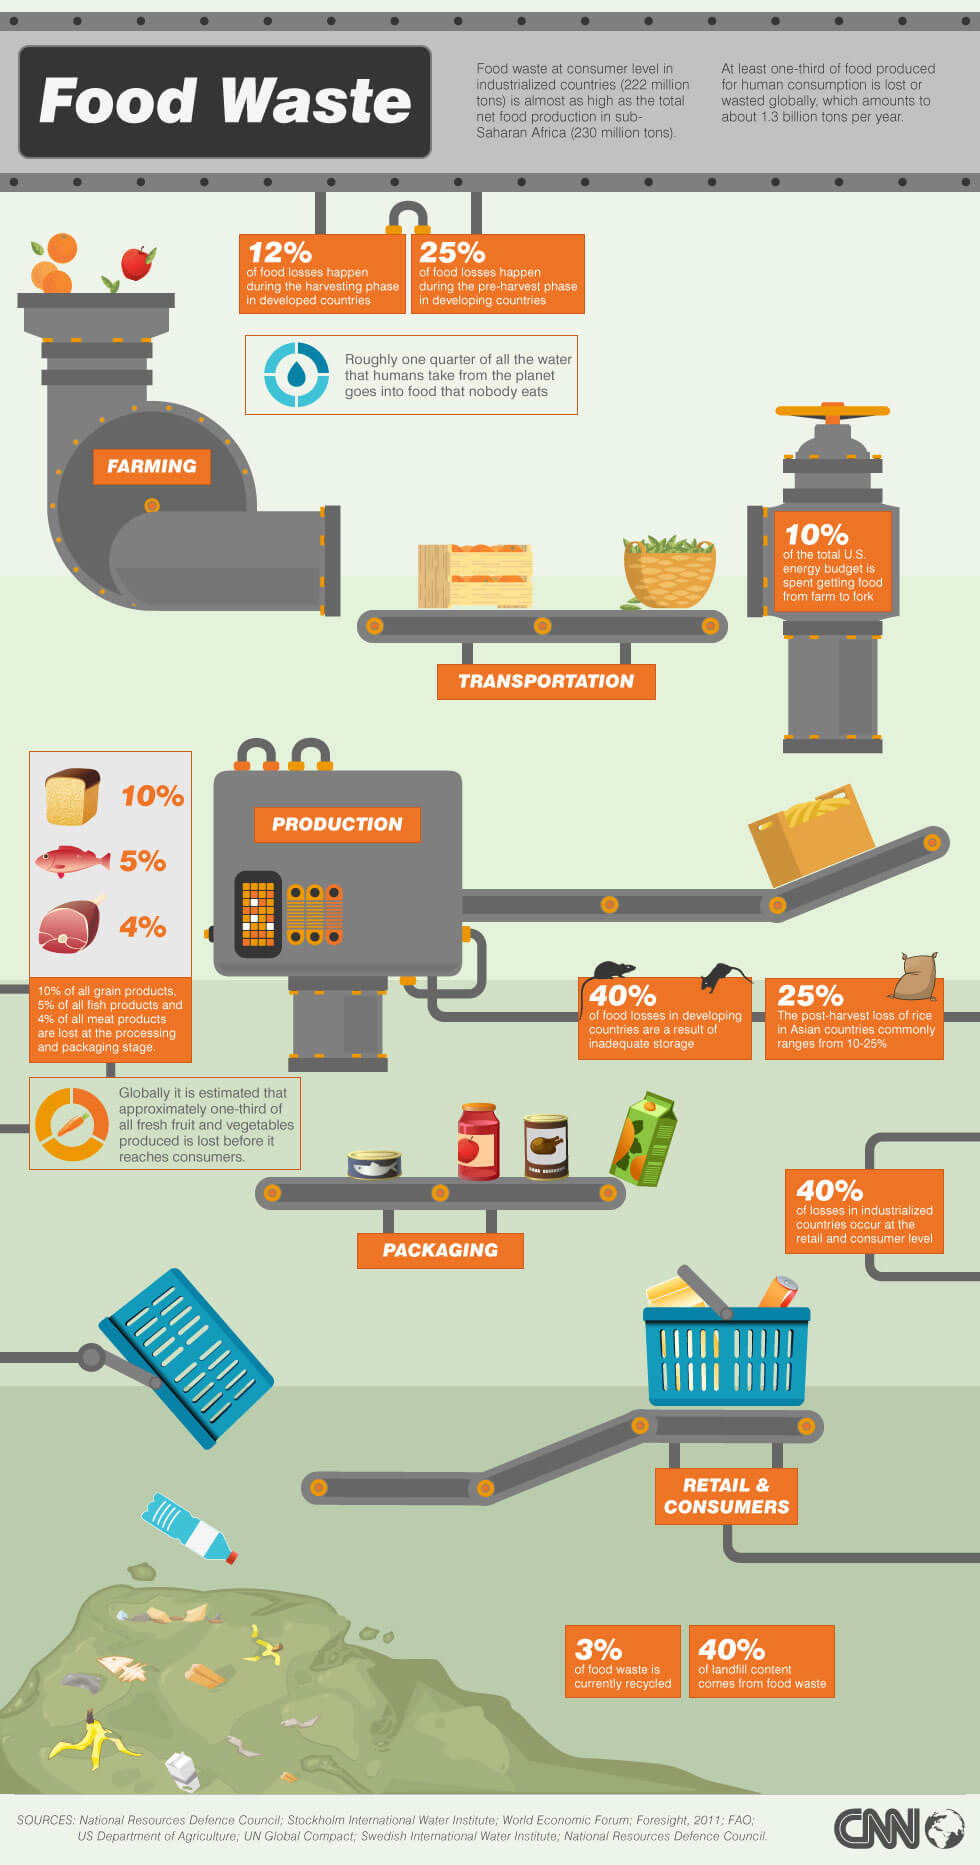 foodwaste.infographic